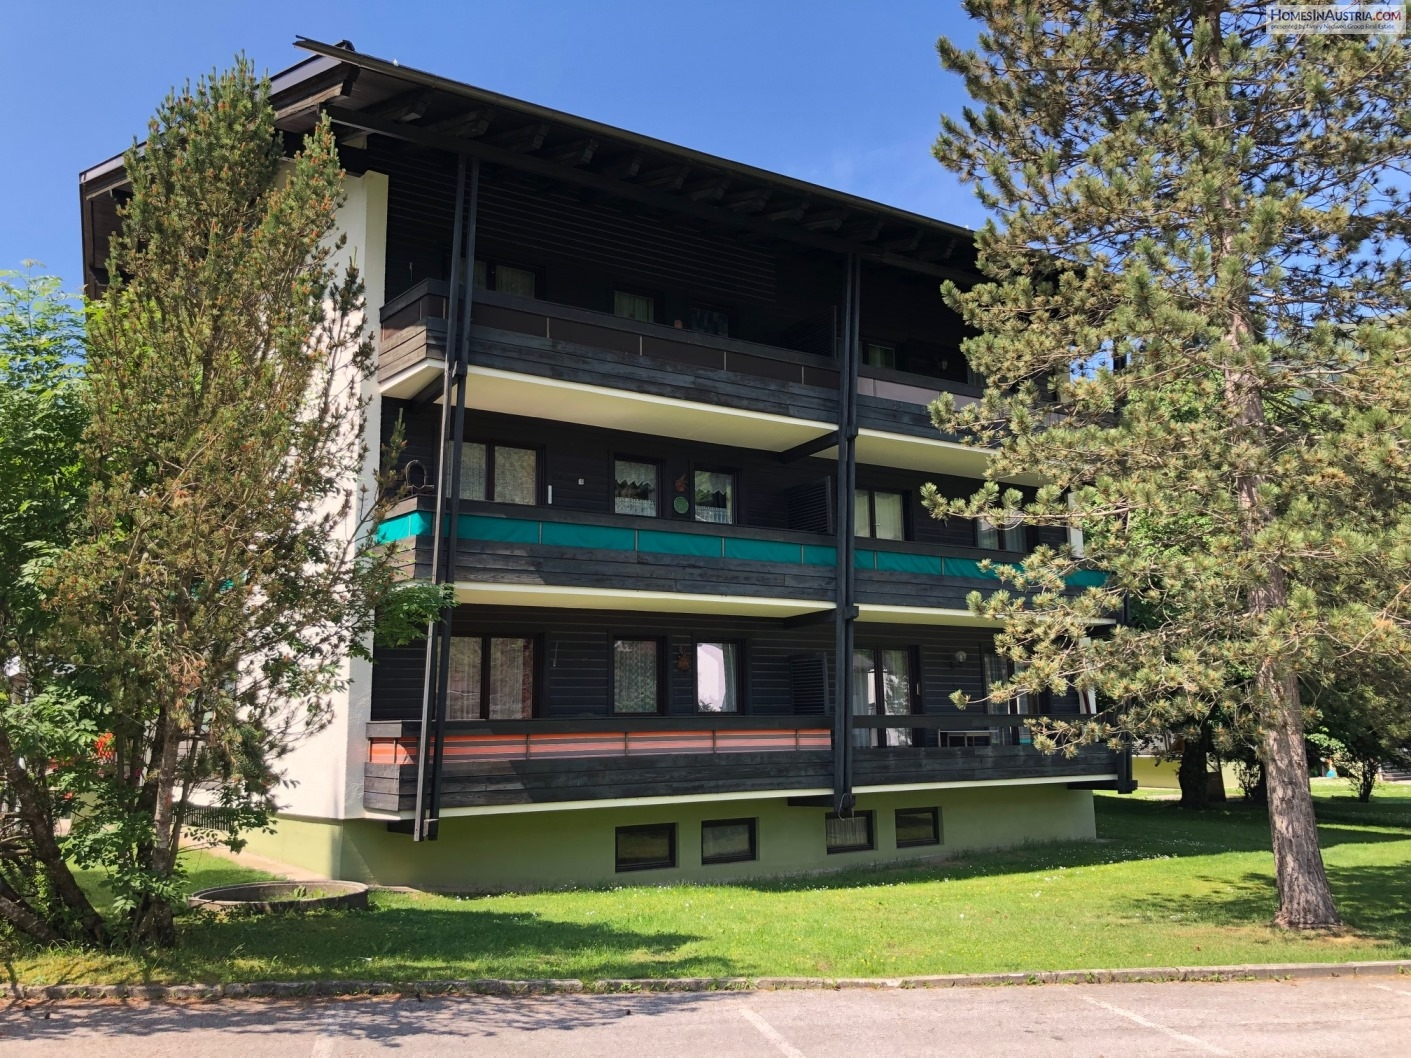 Bad Kleinkirchheim, Kaernten, area of Bach, 40m2 Apartment (RESI) Mezzanine, Balcony, Great Opportunity